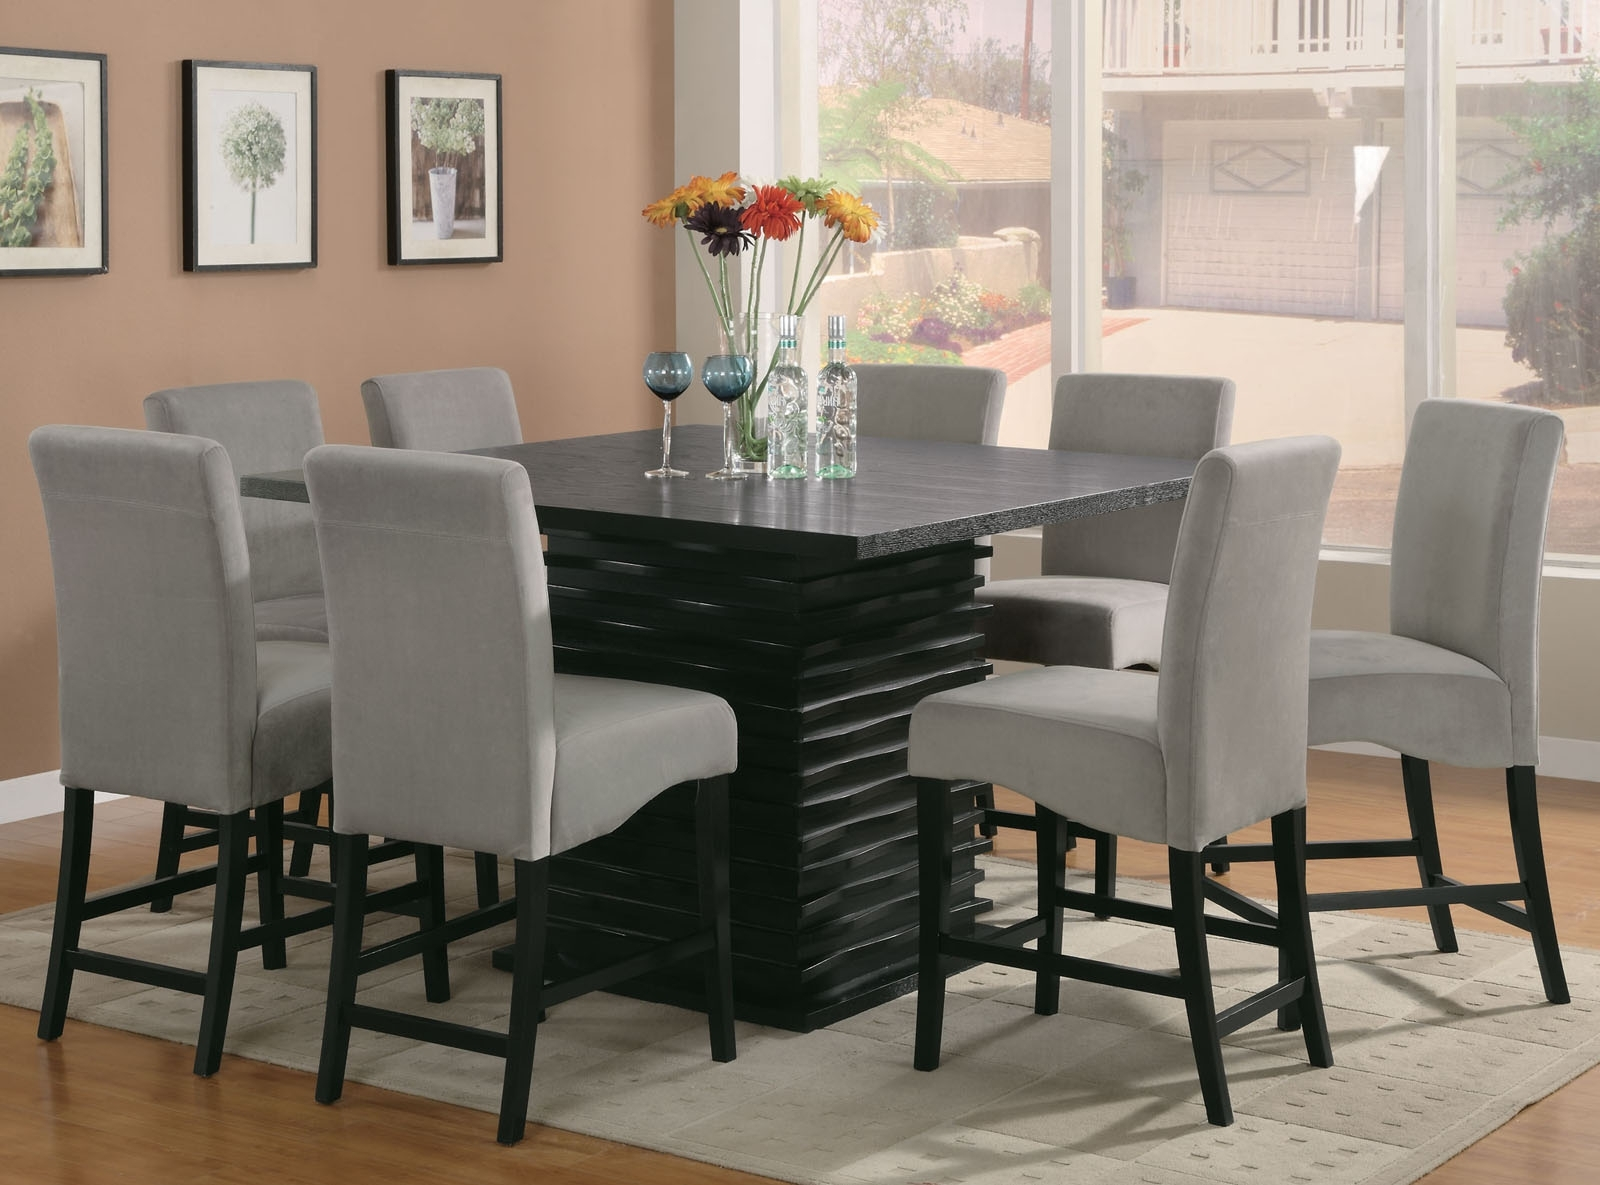 Well Liked Coaster Stanton 9Pc Counter Height Dining Set In Black With Gray Inside Dining Tables 8 Chairs Set (View 25 of 25)